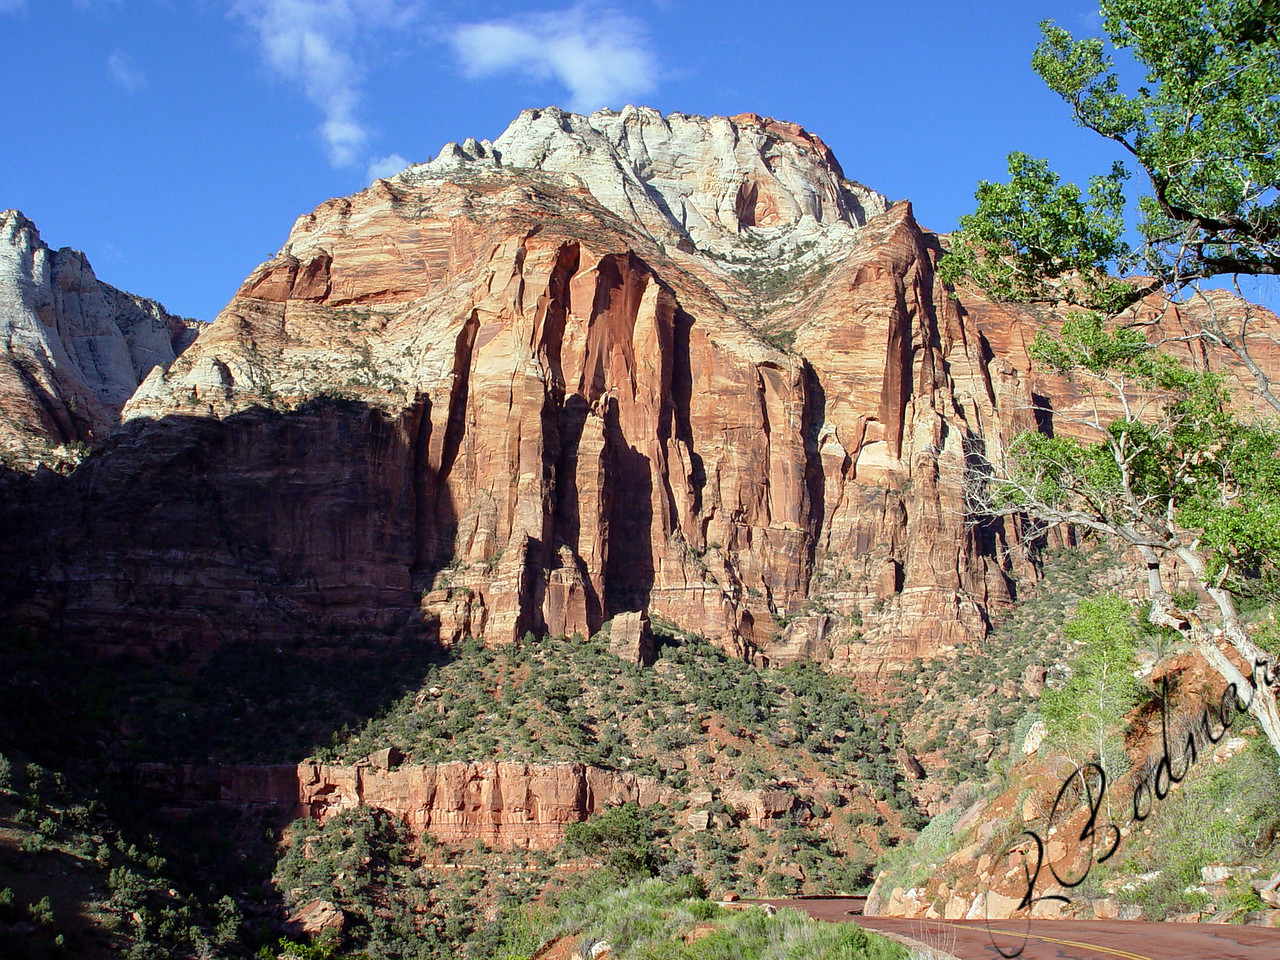 Photo By Robert Bodnar......................................Zion National Park landscape